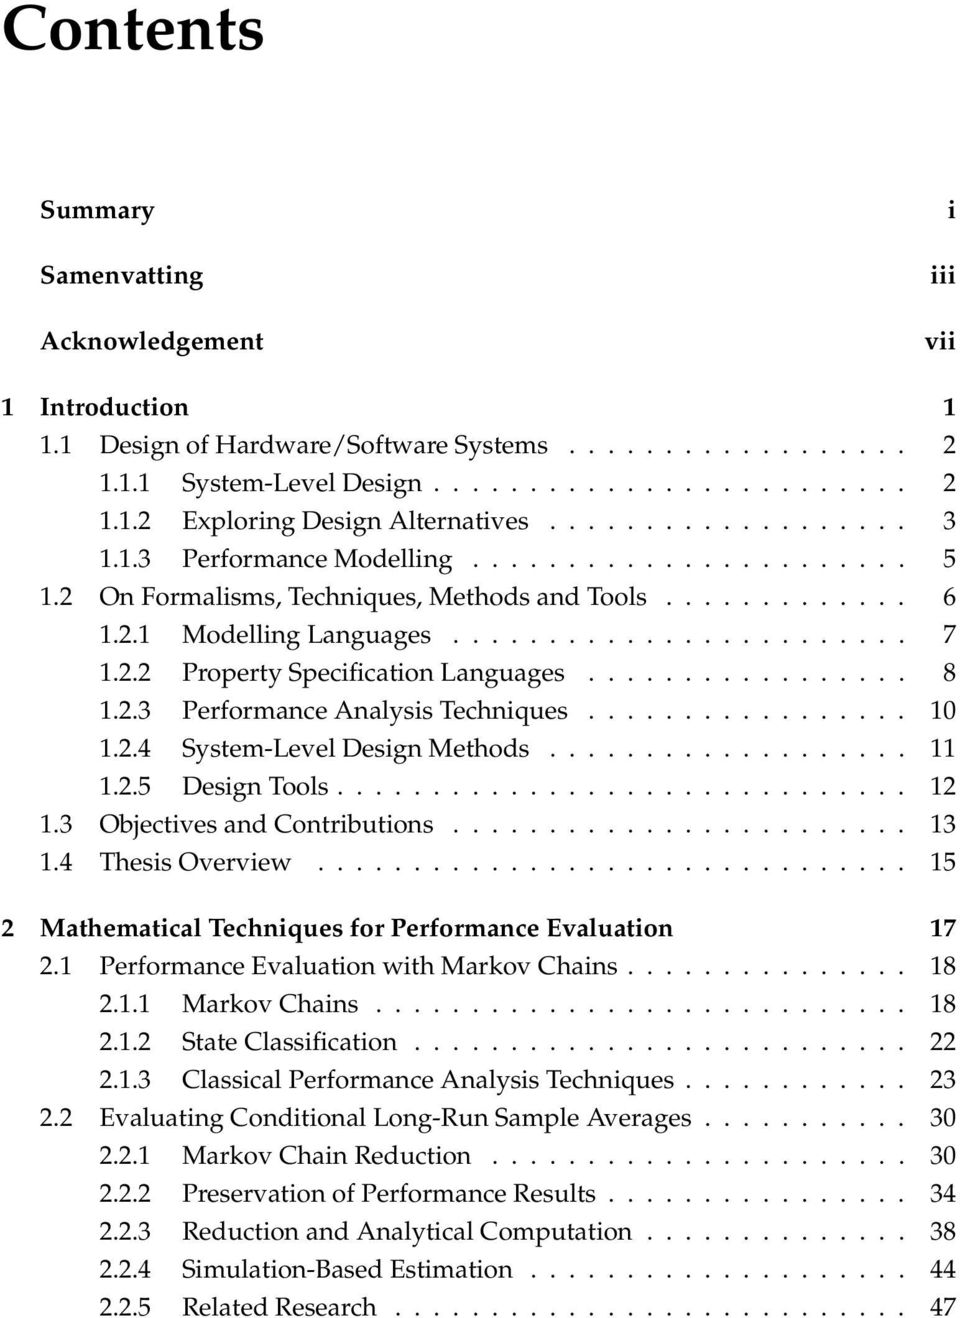 ................ 8 1.2.3 Performance Analysis Techniques................. 10 1.2.4 System-Level Design Methods................... 11 1.2.5 Design Tools.............................. 12 1.